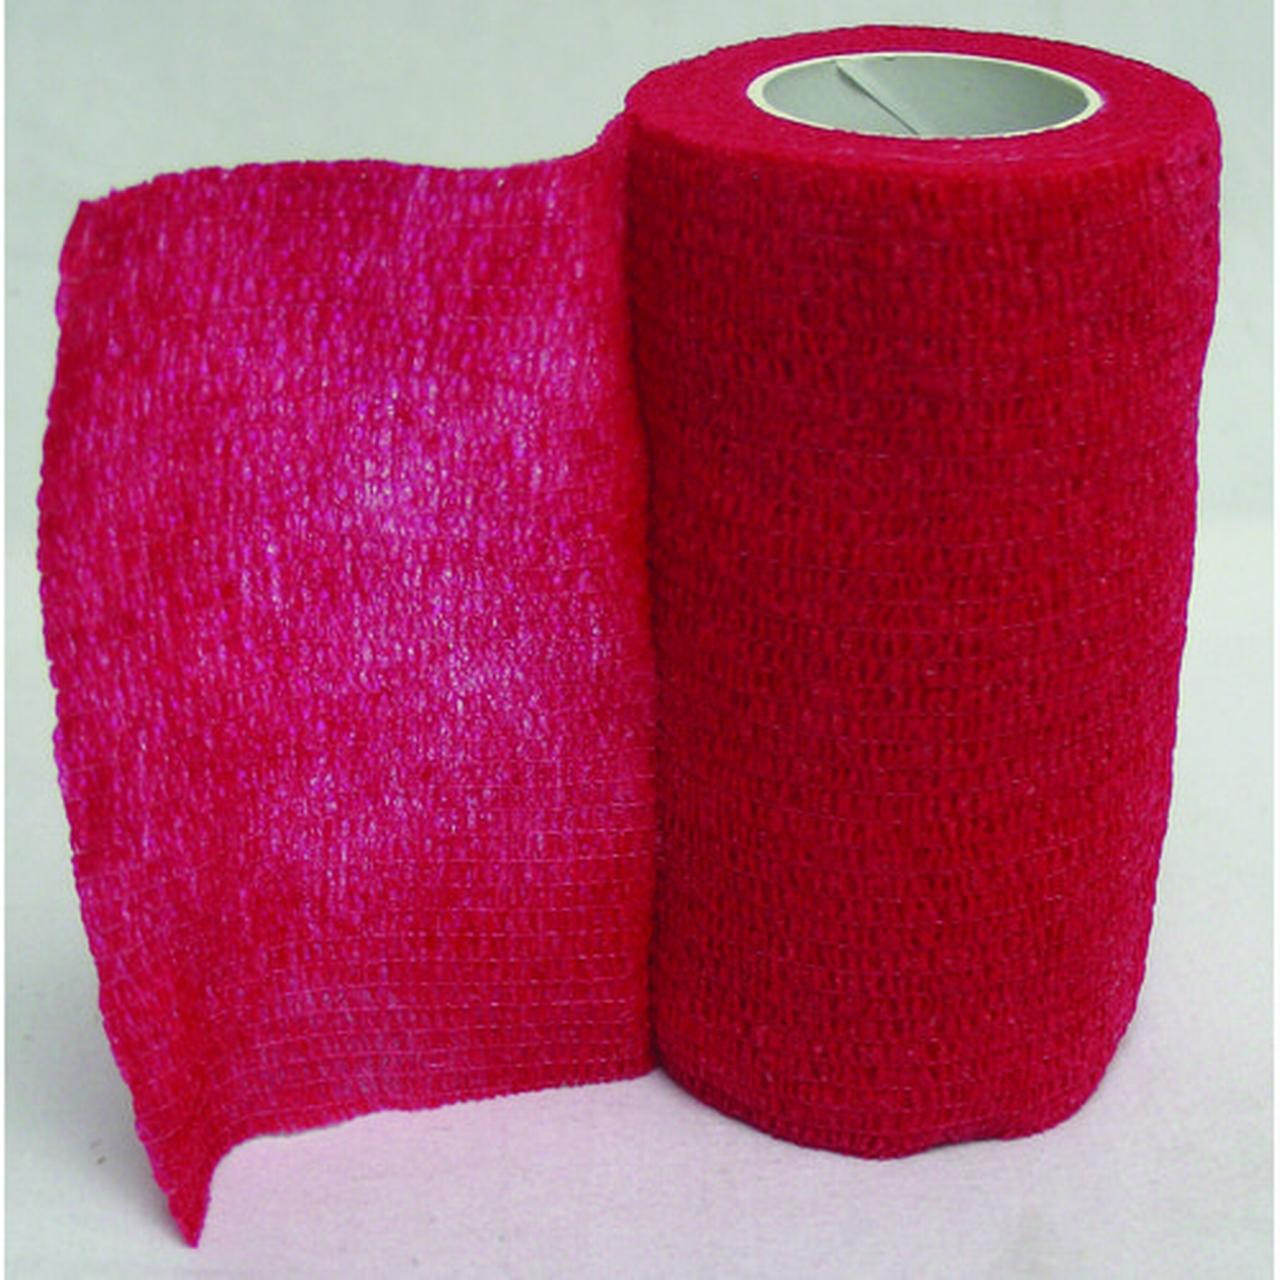 "Animal Supplies International Wrap-It-Up Flexible Bandage, 4"" x 5 yd, Red"